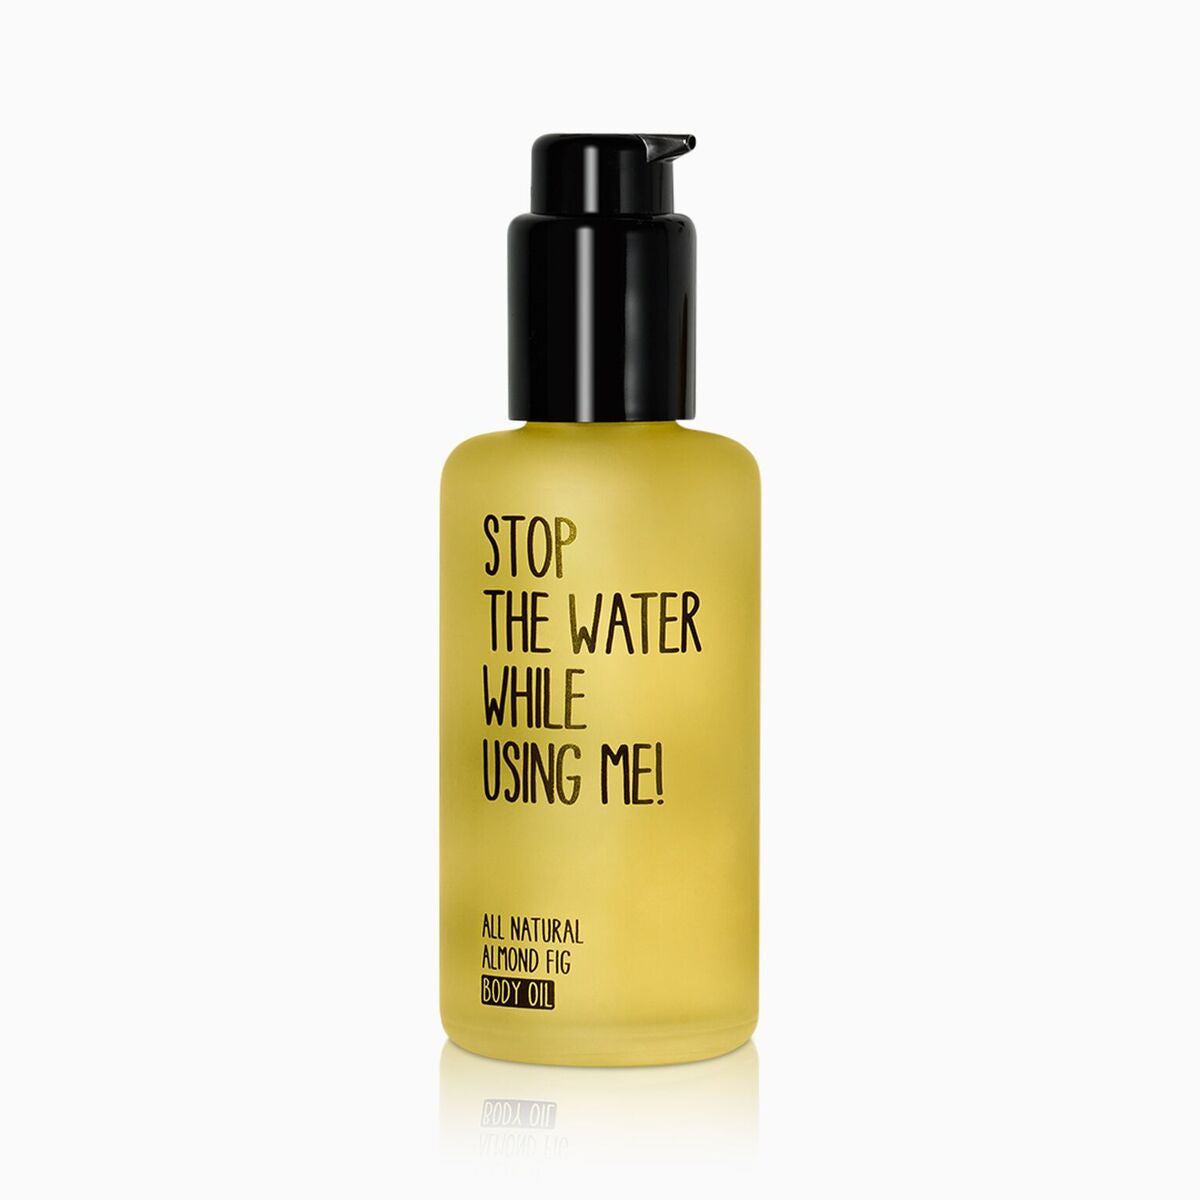 stop the water while using me - body oil